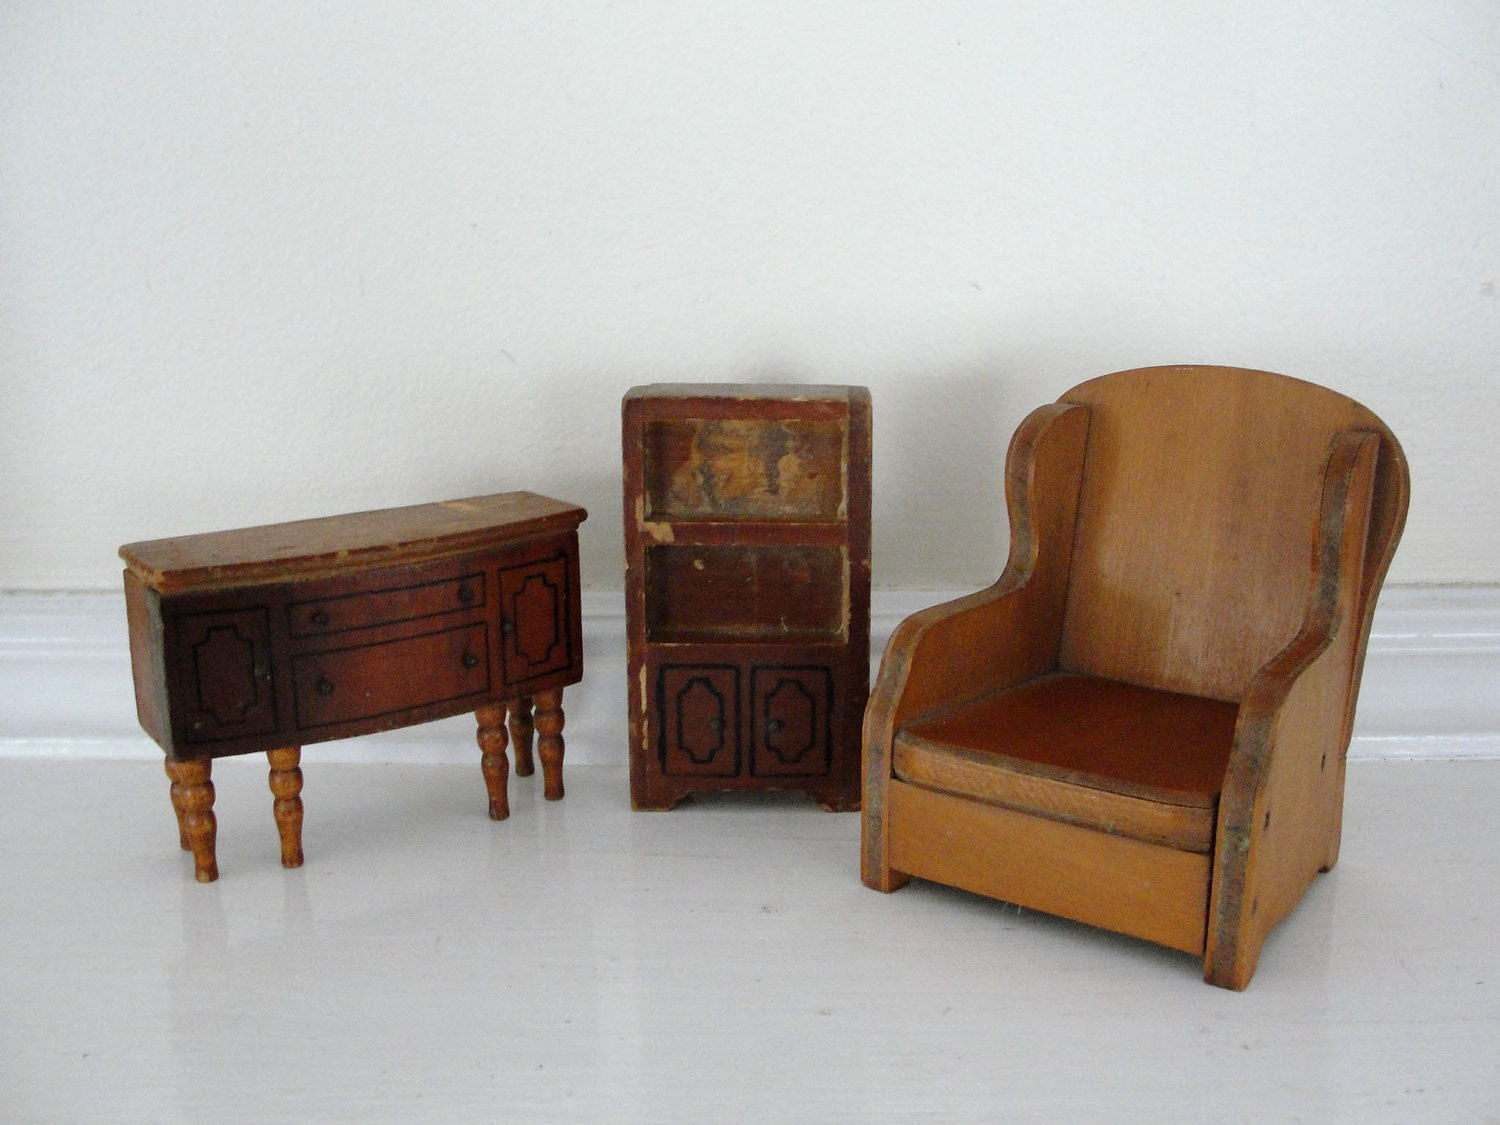 Vintage wooden doll house furniture vintage doll house chair Dolls wooden furniture